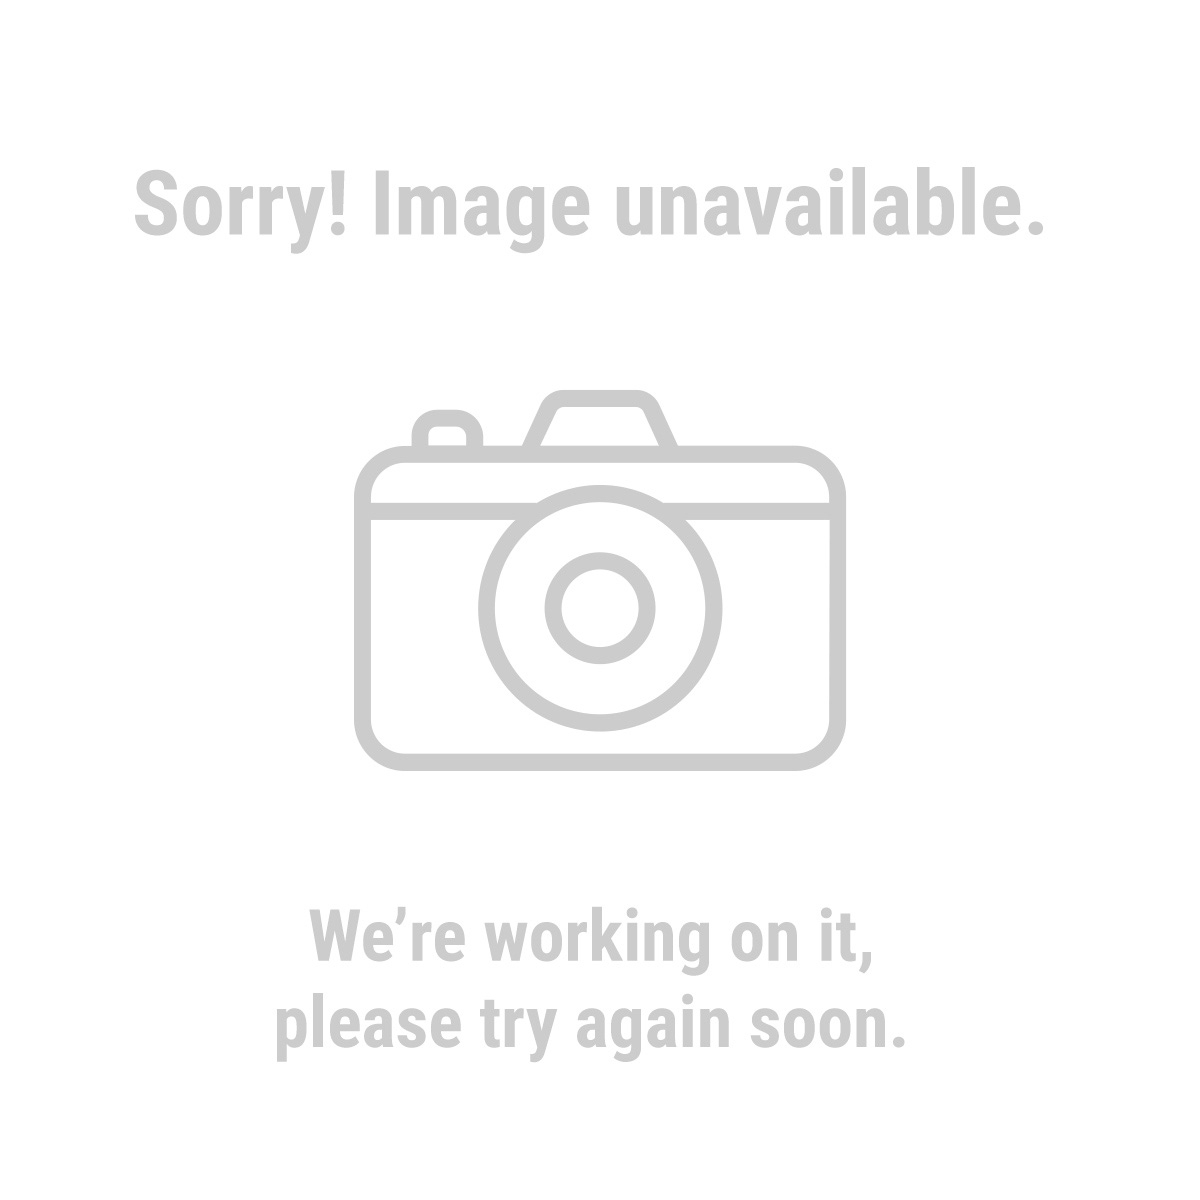 Chicago Electric 93904 12 Volt Halogen Vehicle Work Light